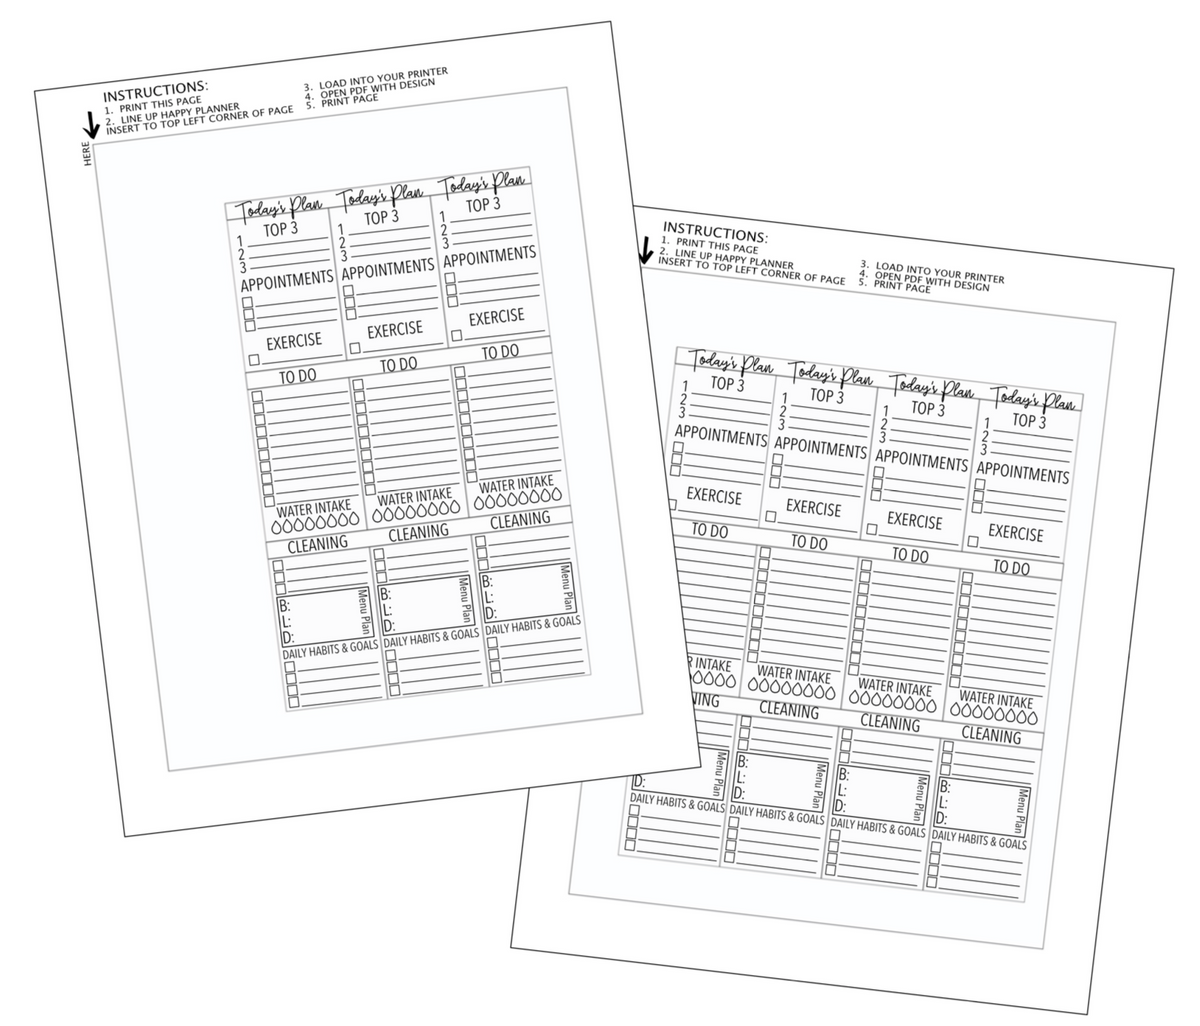 Template For Printing On Happy Planner Inserts with Top 3